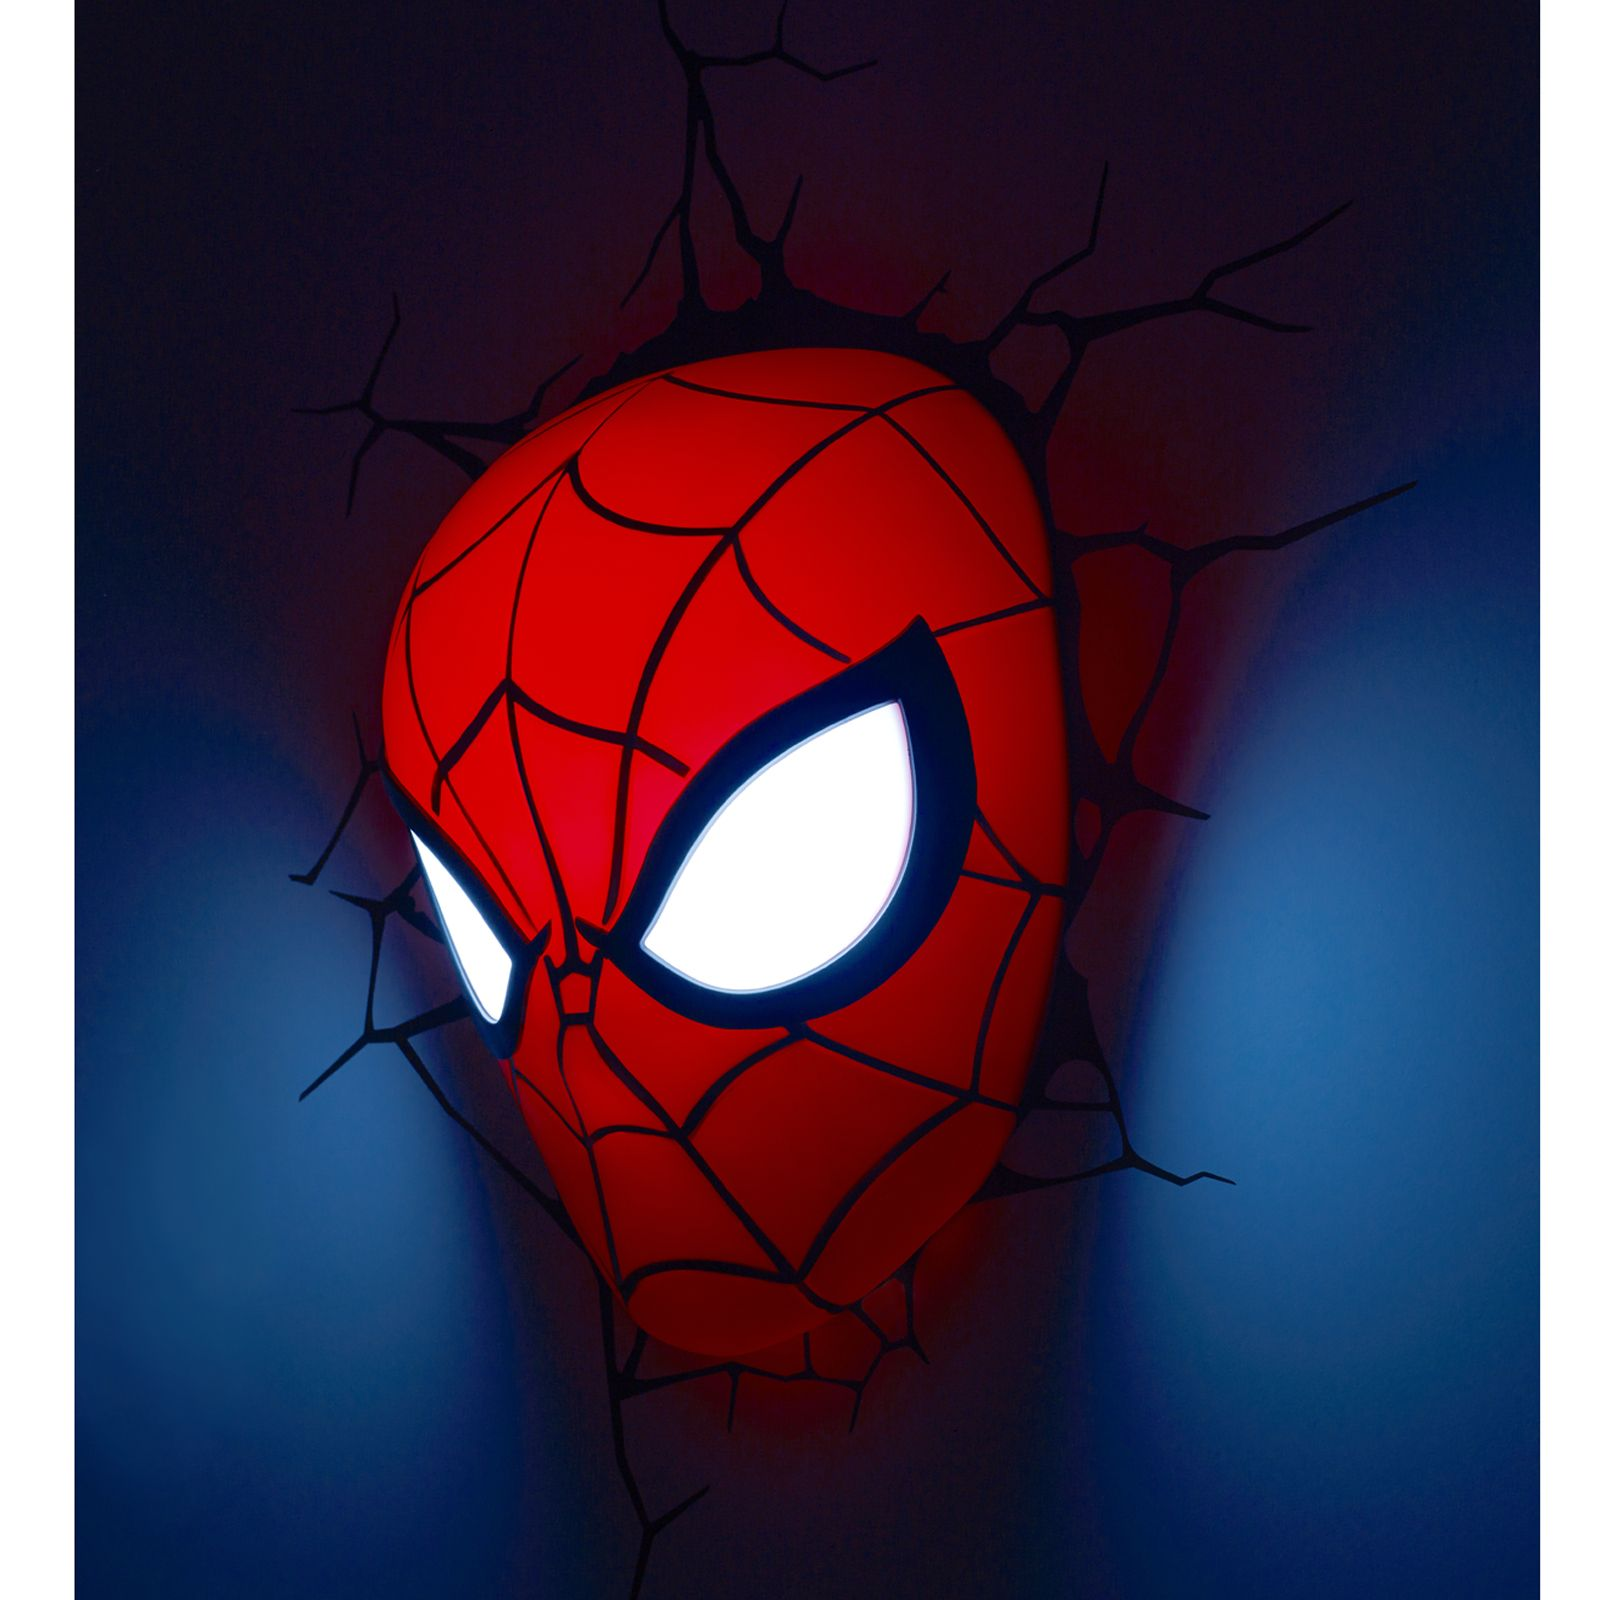 Marvel Wall Lights Spiderman : MARVEL SPIDERMAN 3D LED WALL LIGHT LAMP MASK + STICKERS NEW eBay